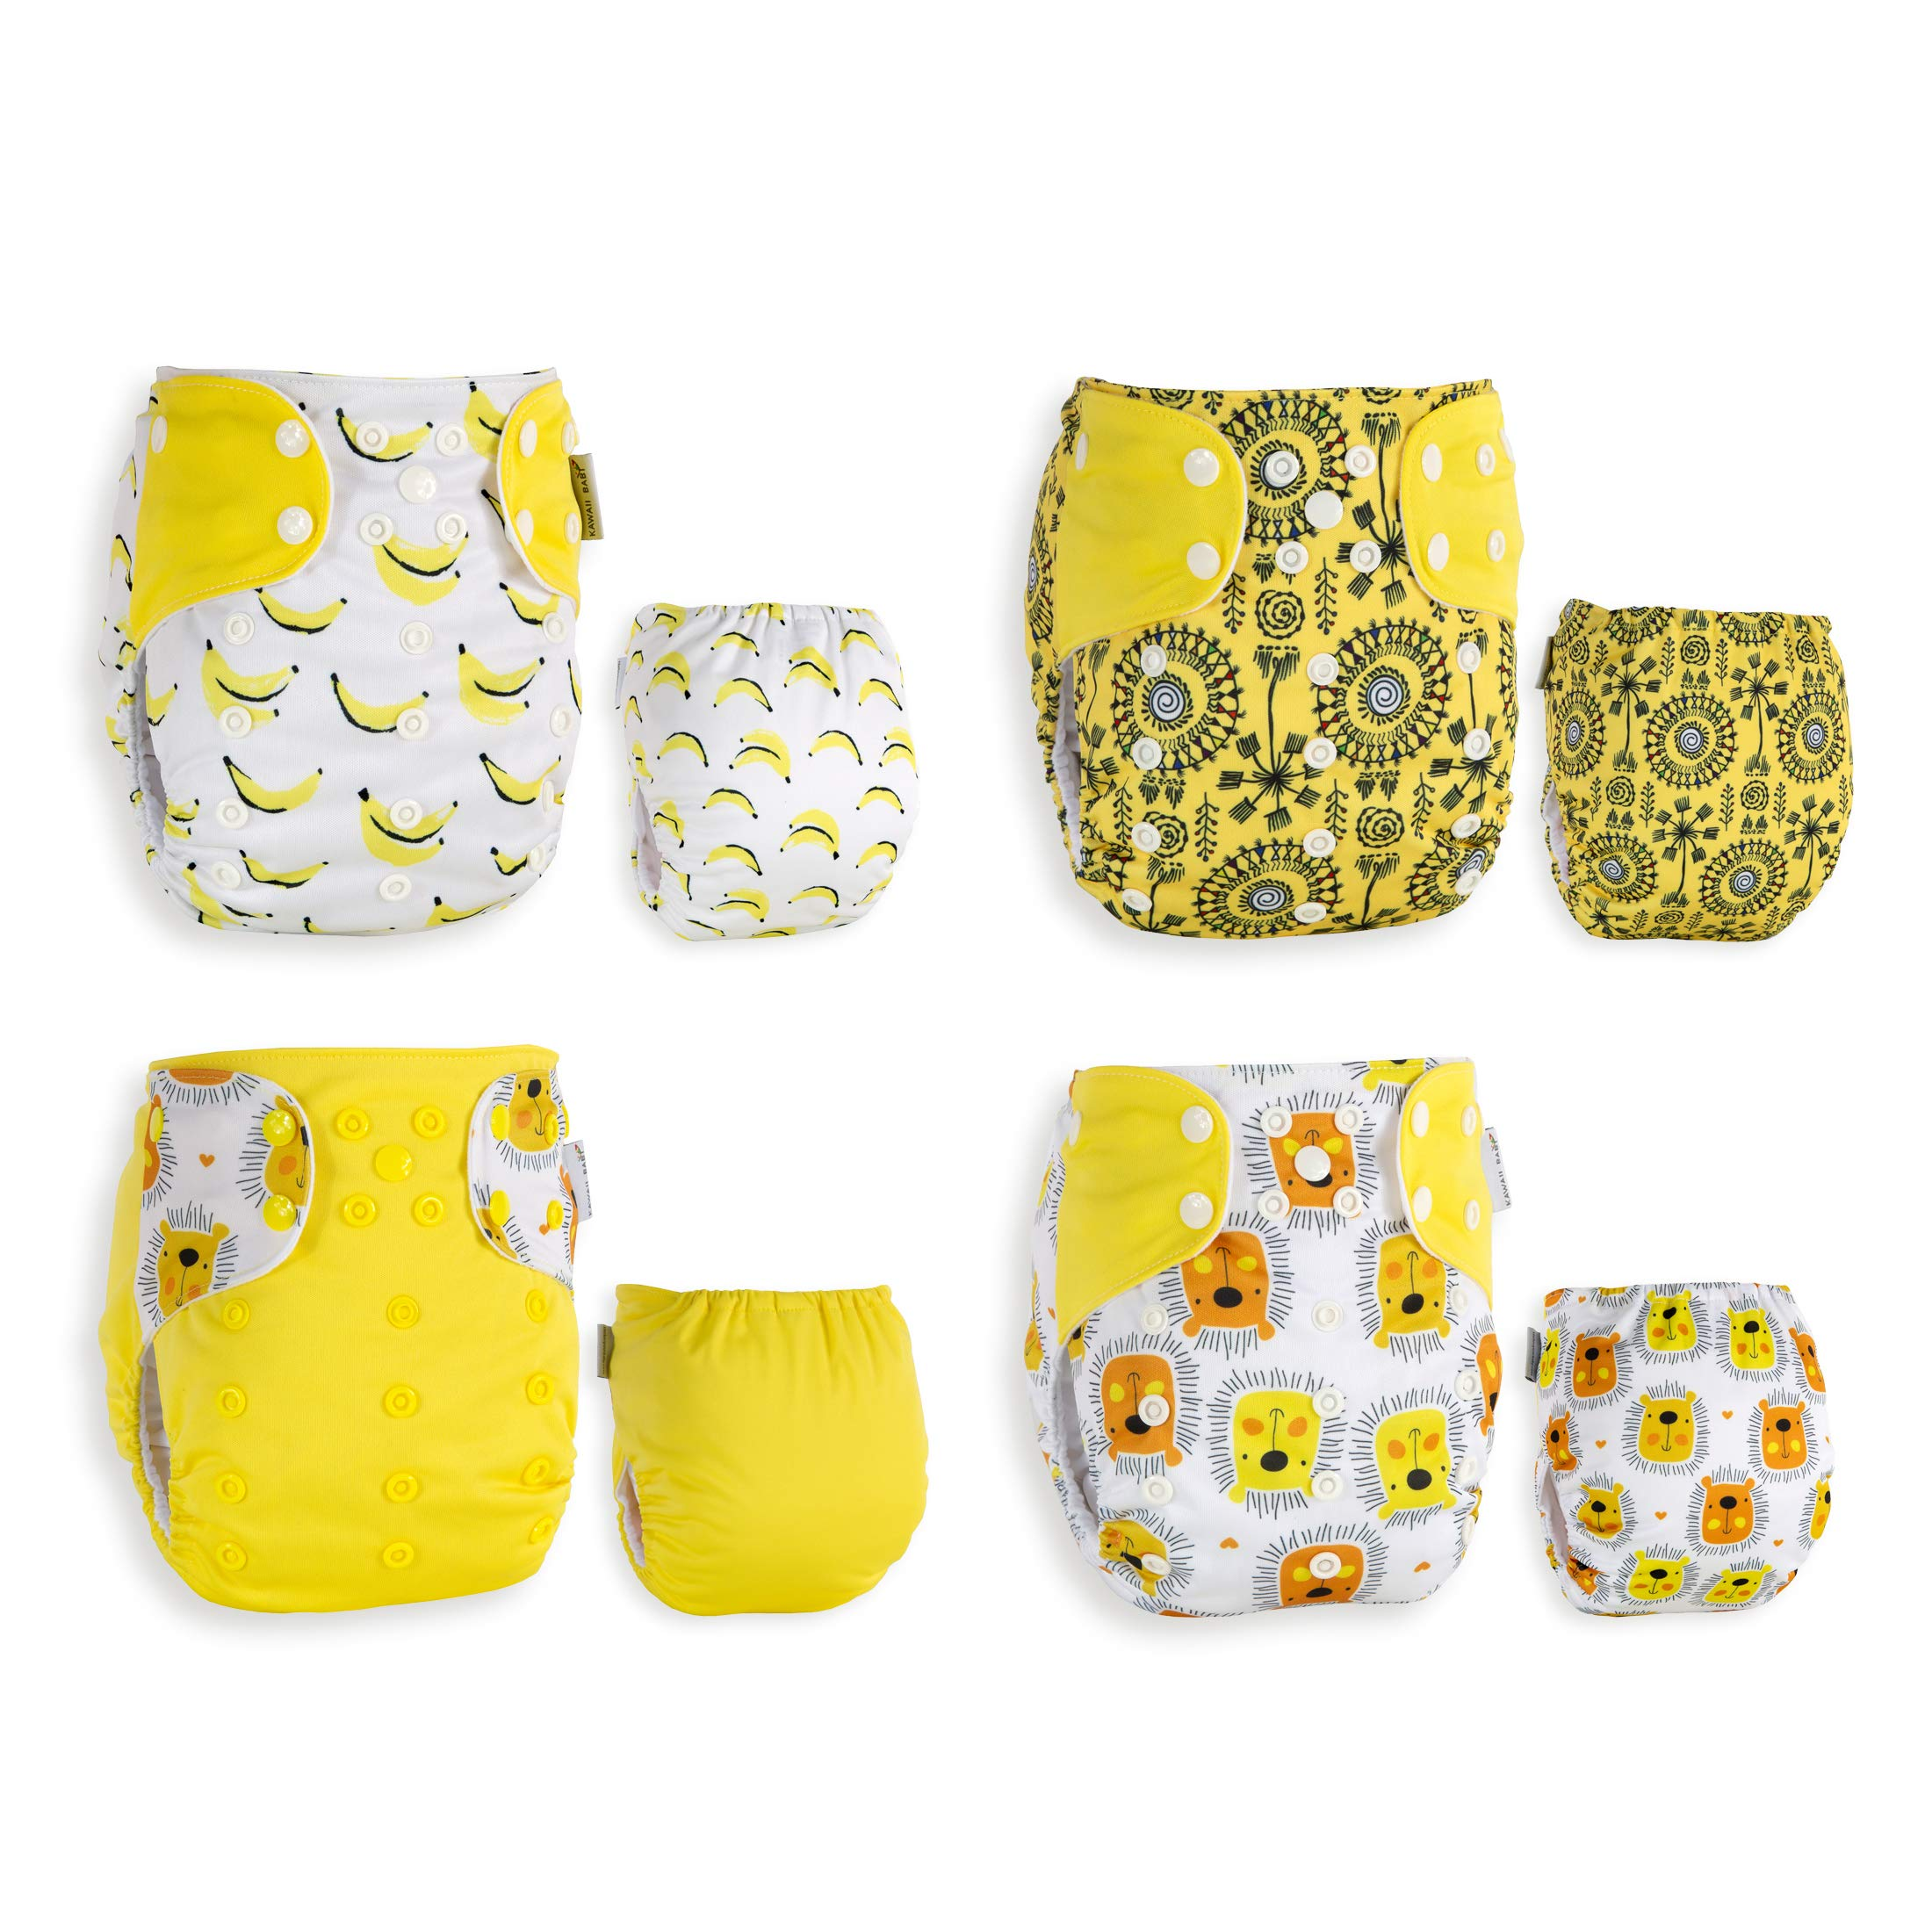 Best Seller! KaWaii Baby 20 One Size Printed Snap Cloth Diaper Shells/Spring Sunshine Theme/Reusable/Newborn to Toddler by Kawaii Baby (Image #2)